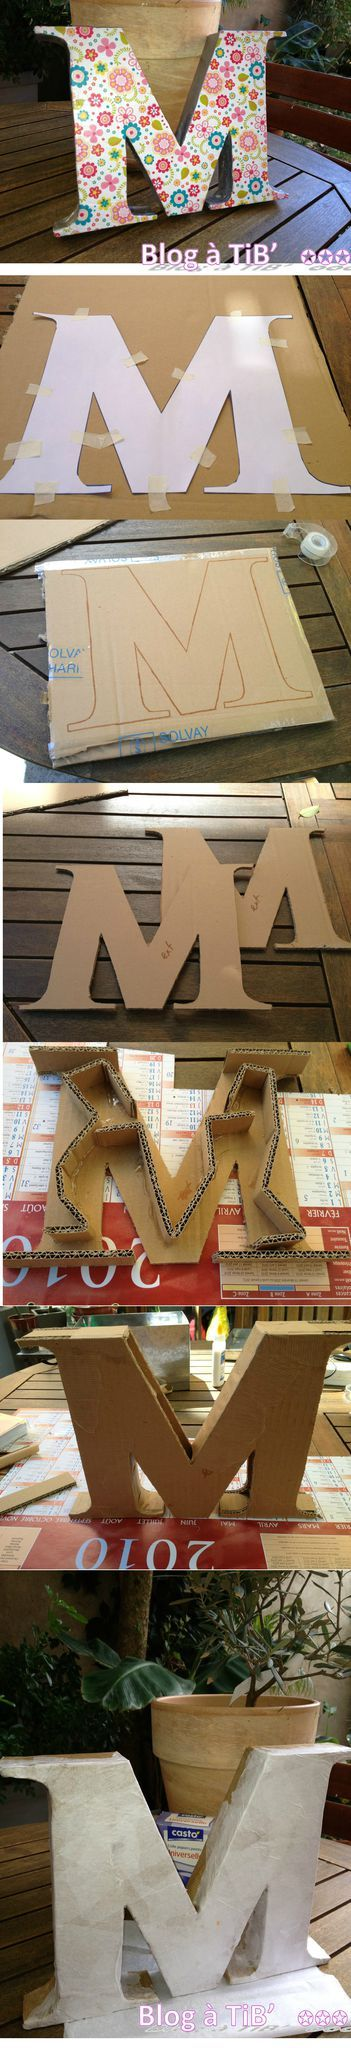 1000 ideas about cardboard letters on pinterest throw pillow covers diy throw pillows and craft sites